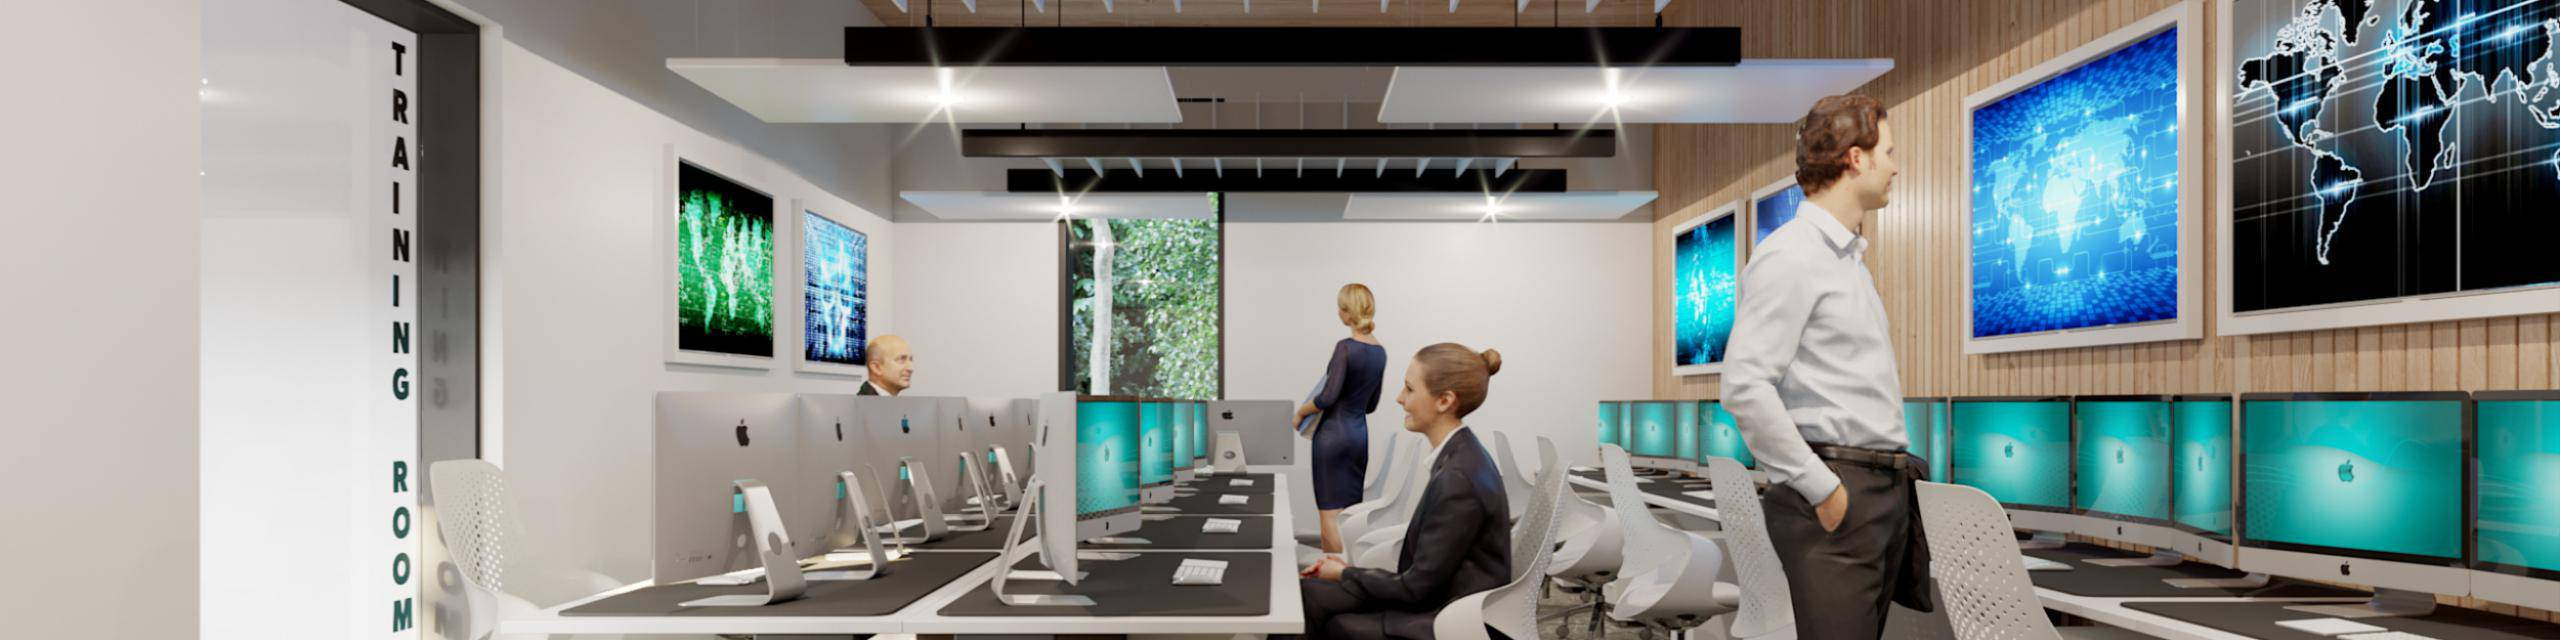 A cgi training room cyber security centre